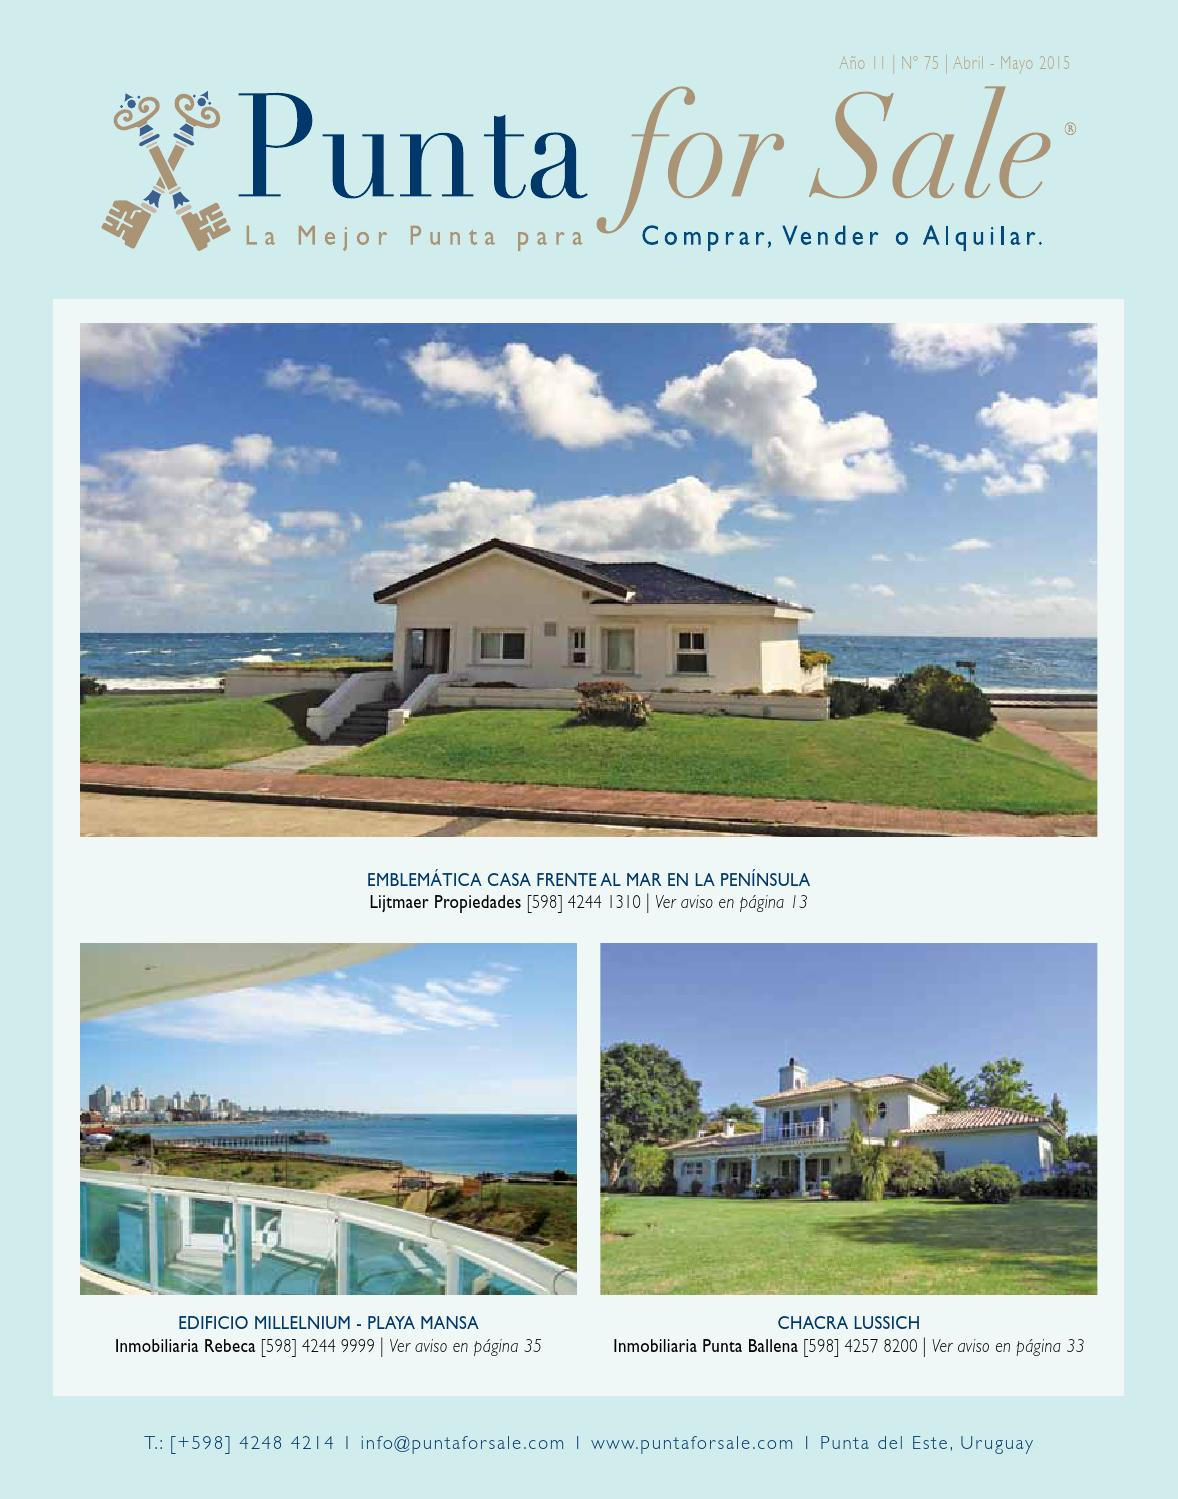 Revista de Real Estate Punta For Sale, edición Abril - Mayo 2015